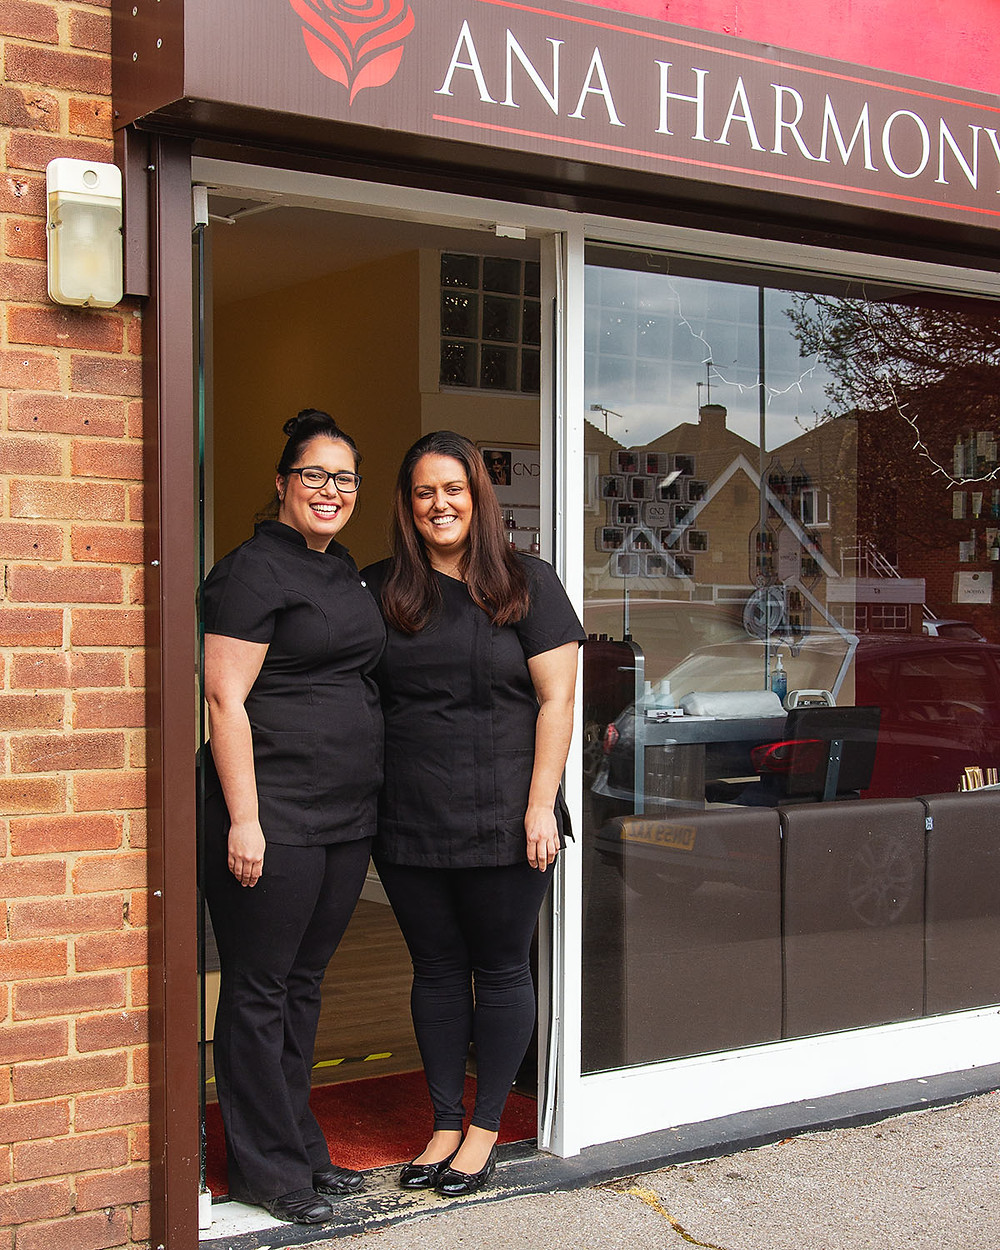 Business photography | Two women in salon uniforms standing in doorway to beauty salon in Maidenhead